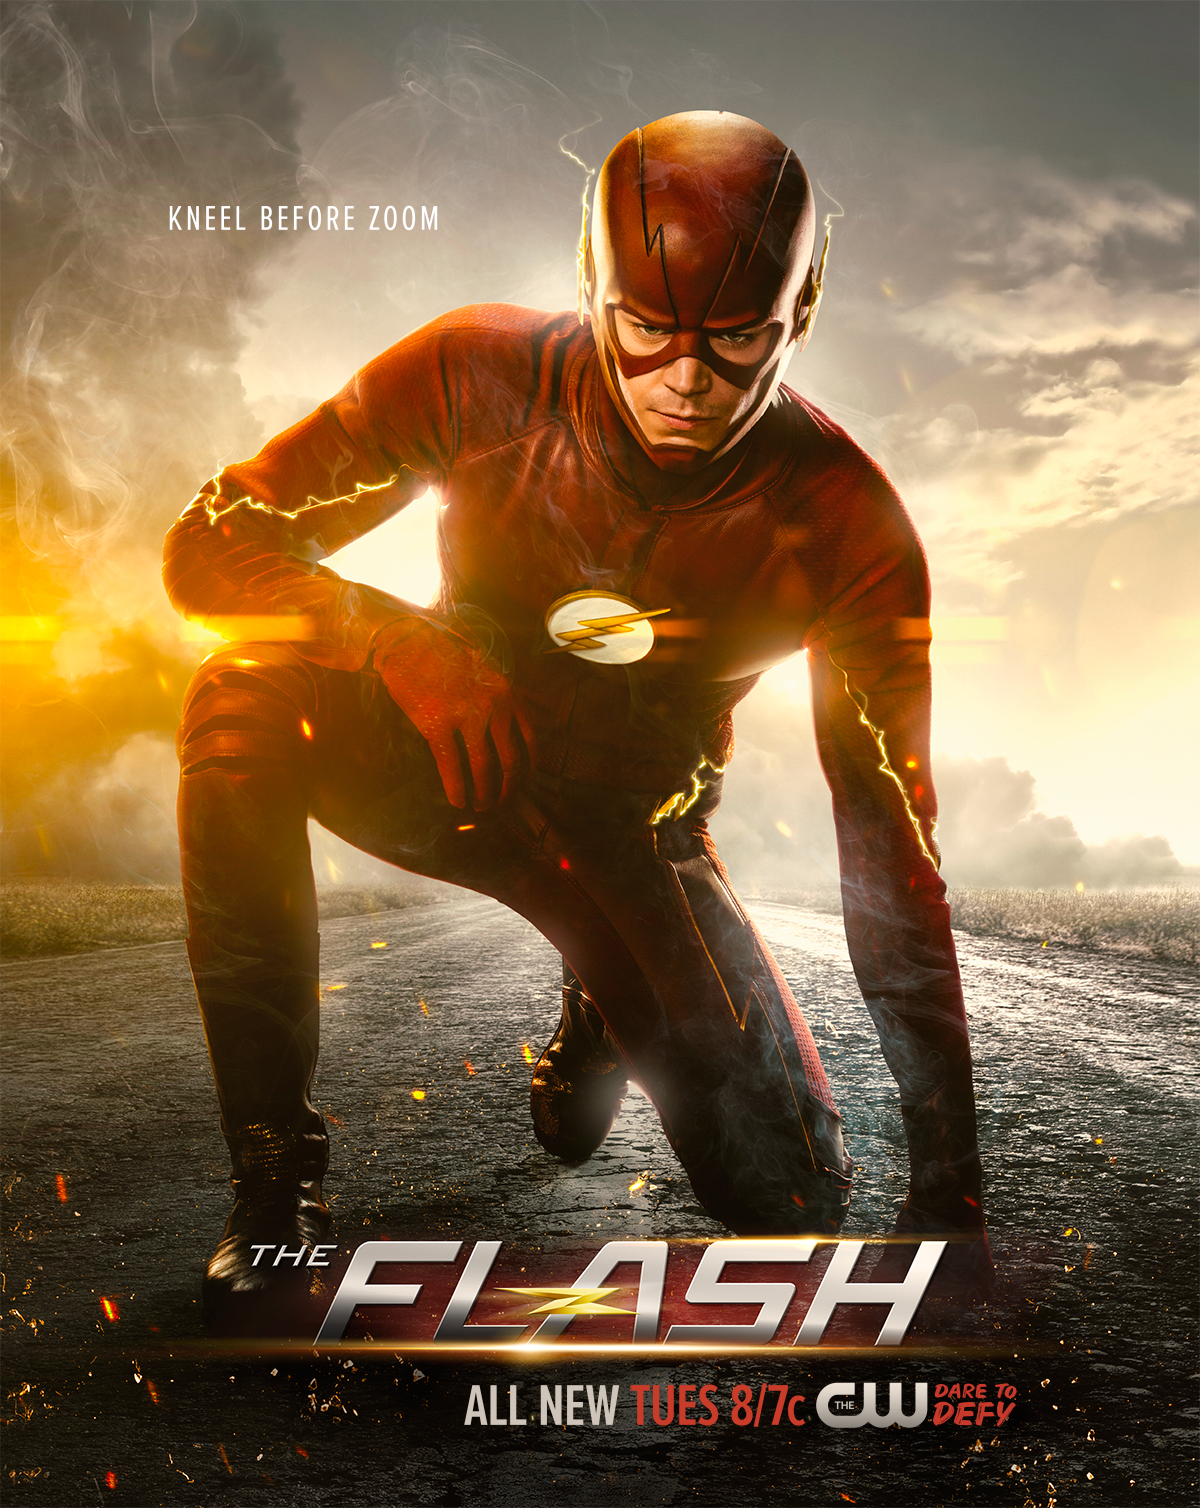 Watch The Flash Face Off Against Zoom In The Latest Episode For Free With The Cw App The Flash Season Supergirl And Flash The Flash Season 2